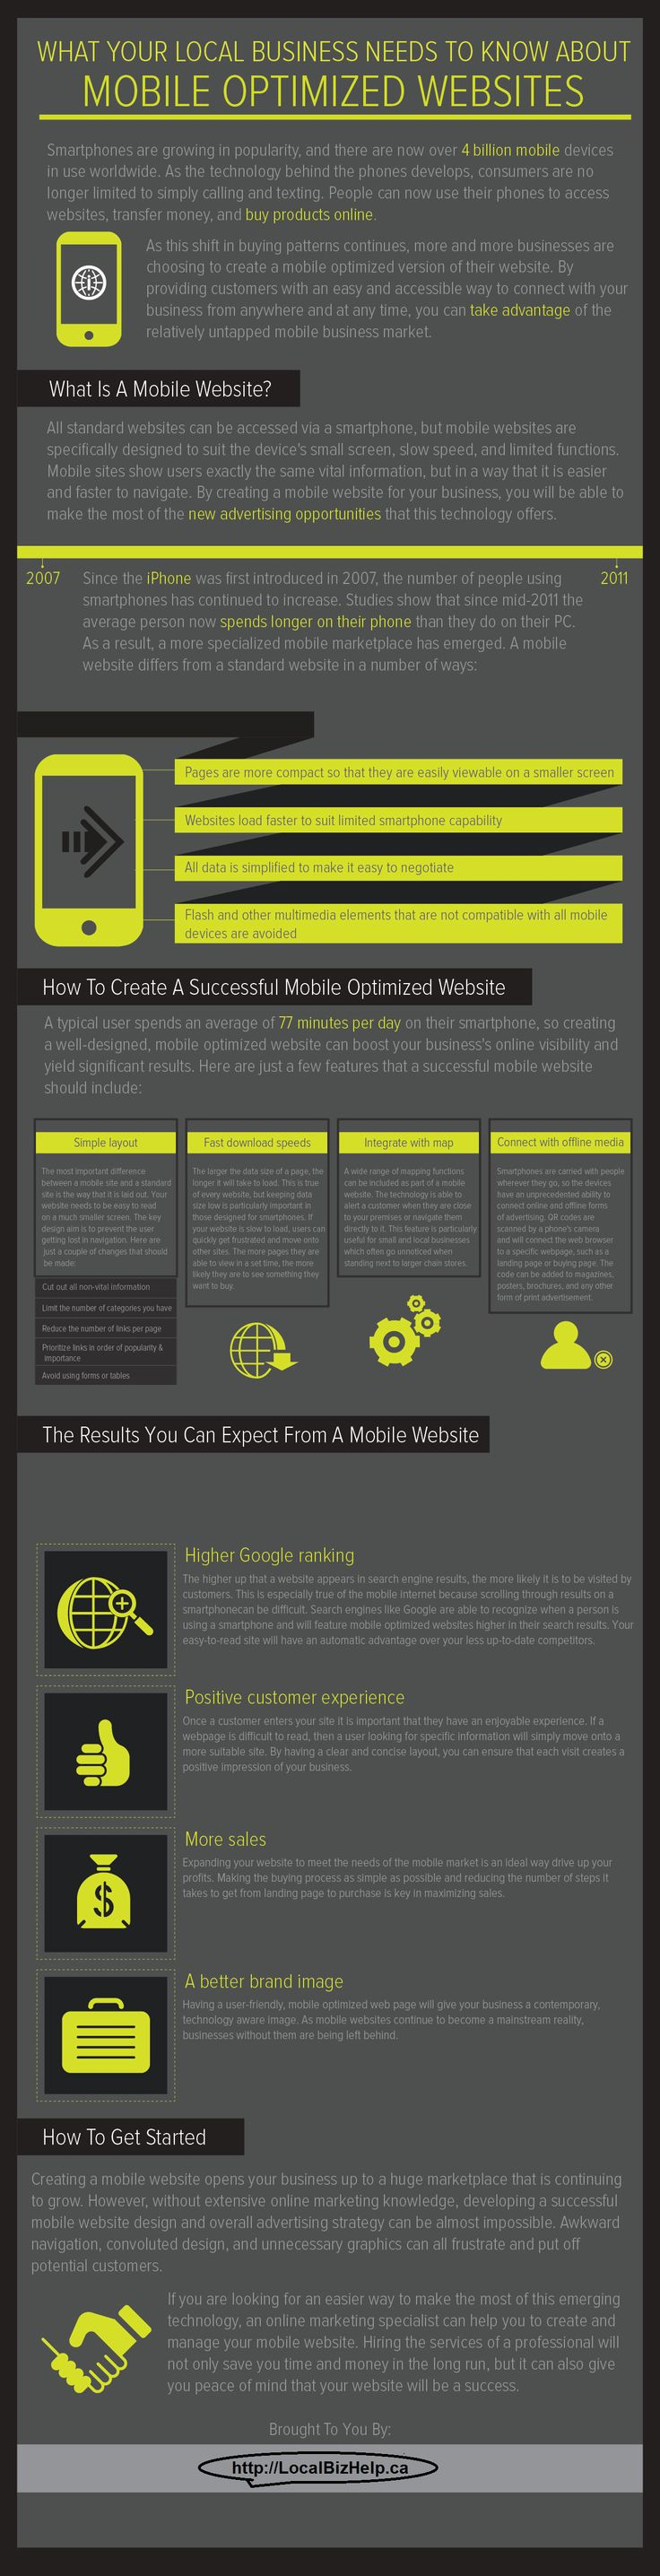 Infographic - What Your Local Business Needs to Know About Mobile Optimized Websites >> local mobile marketing --> http://localbizhelp.ca/mobile/1184/